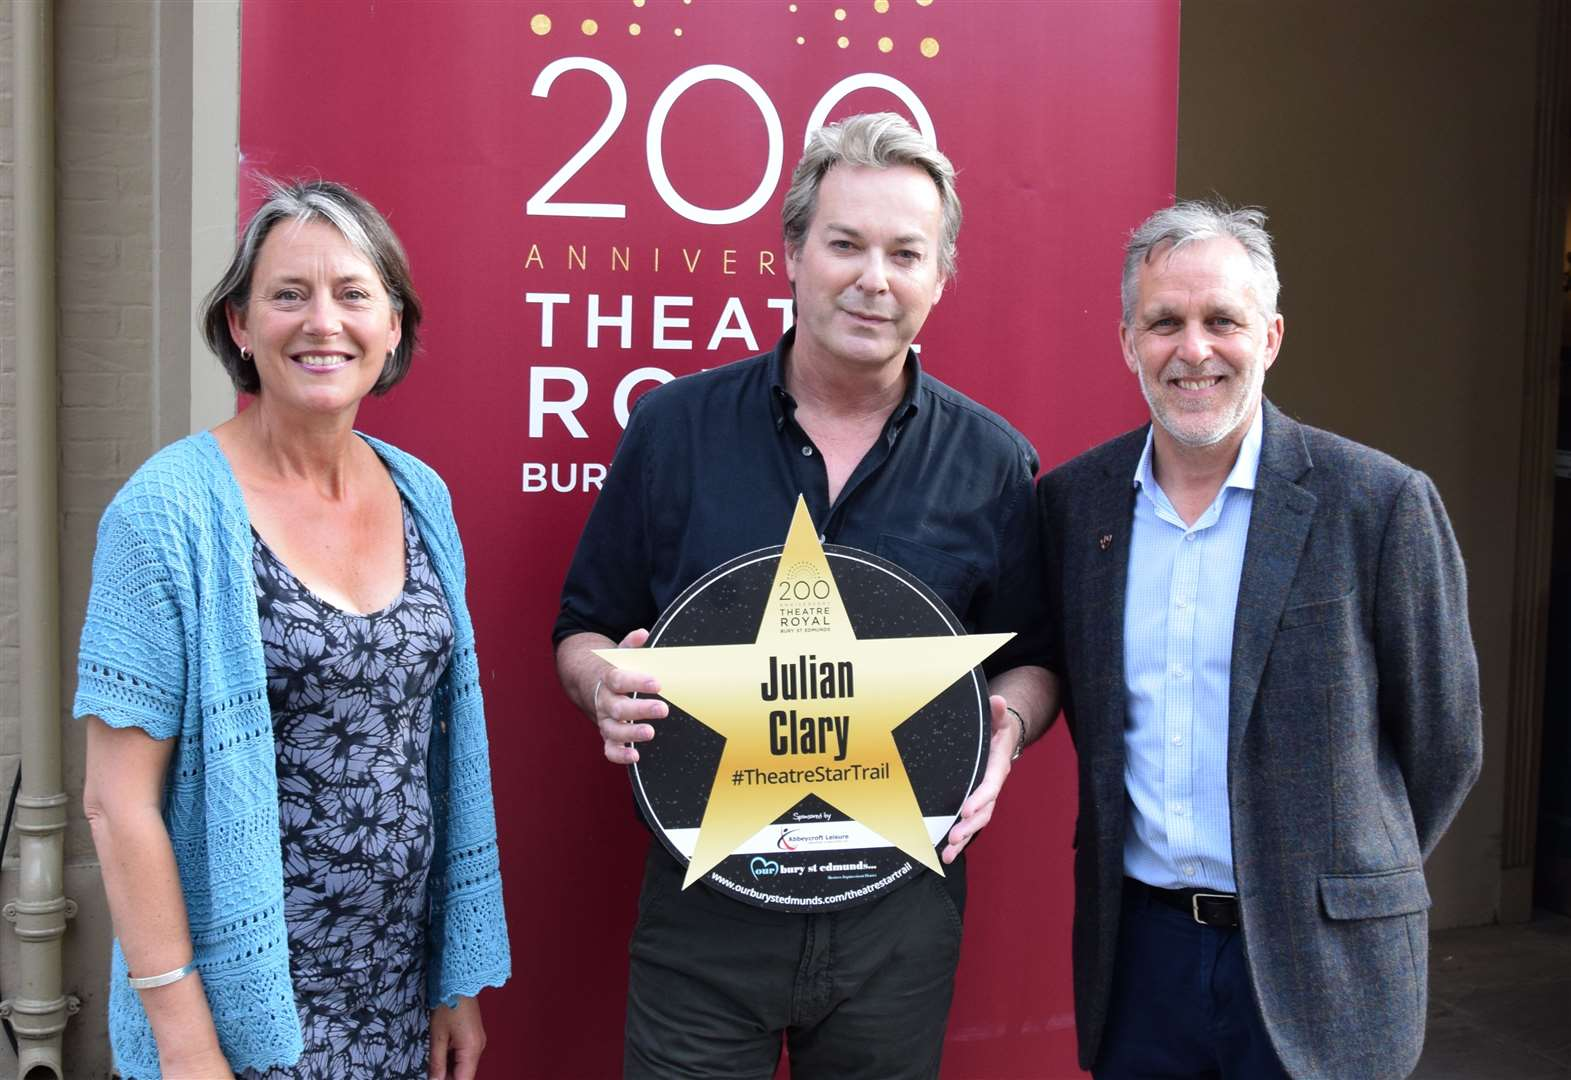 Top prizes up for grabs for Theatre Star Trail winners